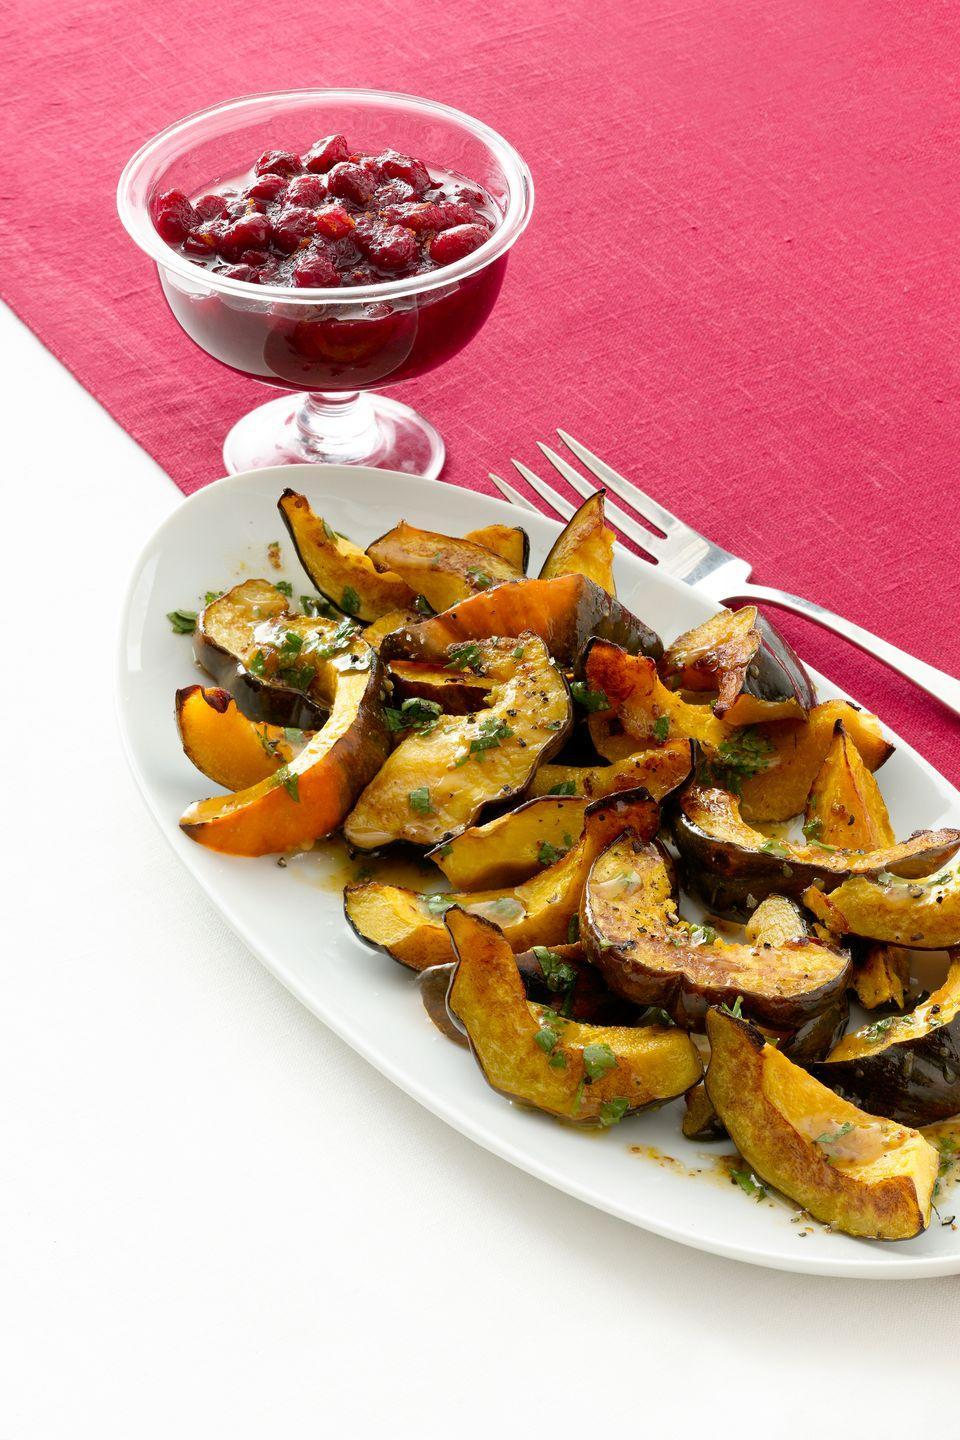 """<p>Bring additional seasonal ingredients to the Thanksgiving table this year with apple cider-roasted acorn squash doused in a cider vinaigrette.</p><p><a href=""""https://www.womansday.com/food-recipes/food-drinks/recipes/a12206/roasted-acorn-squash-with-cider-vinaigrette-recipe-wdy1112/"""" rel=""""nofollow noopener"""" target=""""_blank"""" data-ylk=""""slk:Get the Roasted Acorn Squash with Cider Vinaigrette recipe."""" class=""""link rapid-noclick-resp""""><em><strong>Get the Roasted Acorn Squash with Cider Vinaigrette recipe.</strong></em></a></p>"""